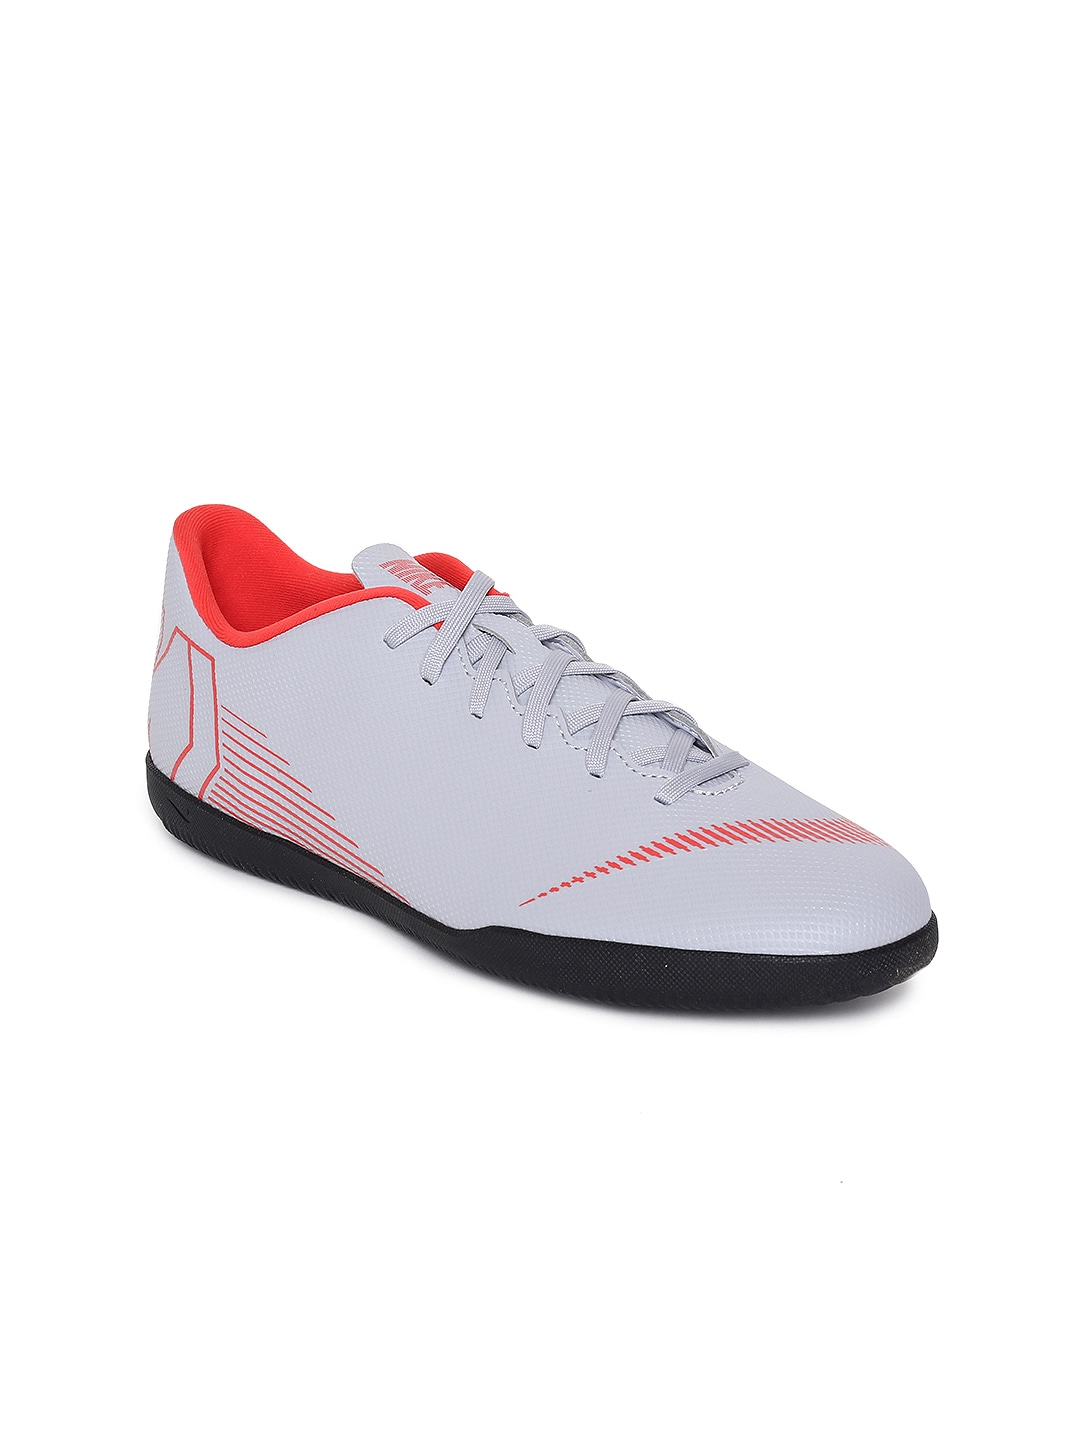 size 40 4aa1e e41f9 Womens Nike Shoes - Buy Nike Shoes for Women Online in India